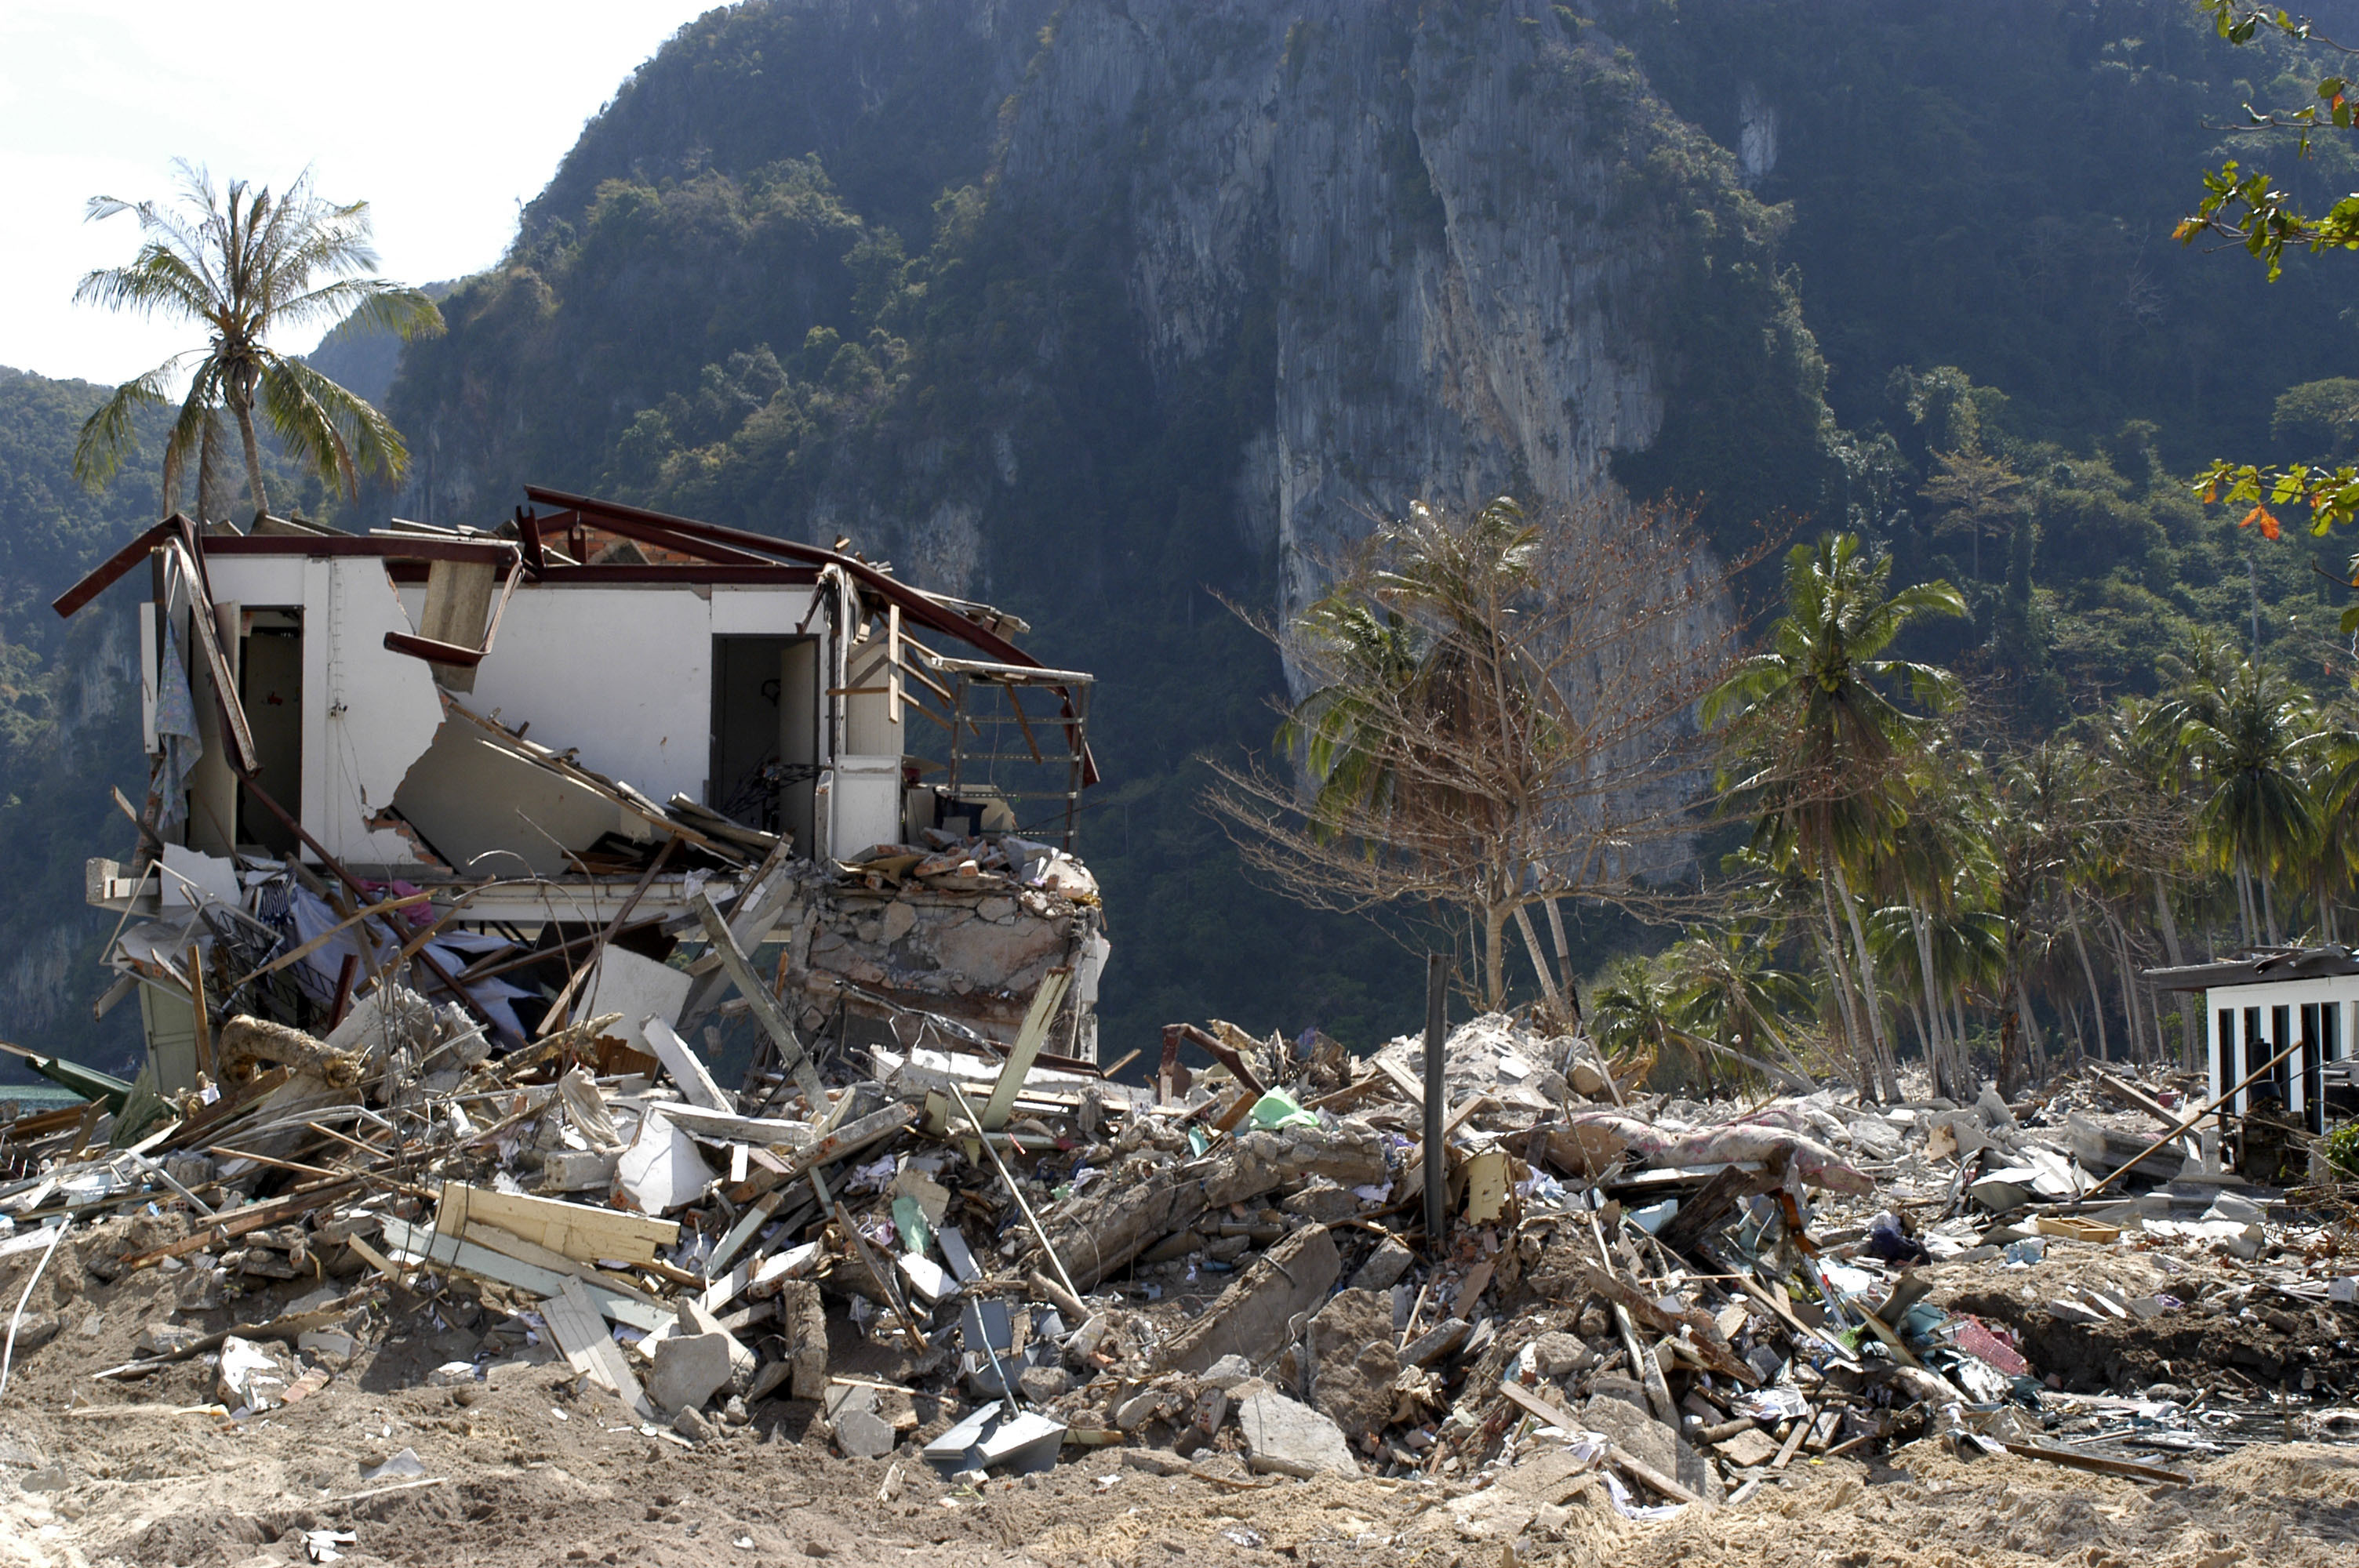 A new study revealed that reconstruction after the 2004 tsunami inadvertently caused socioeconomic segregation in an Indonesian province.